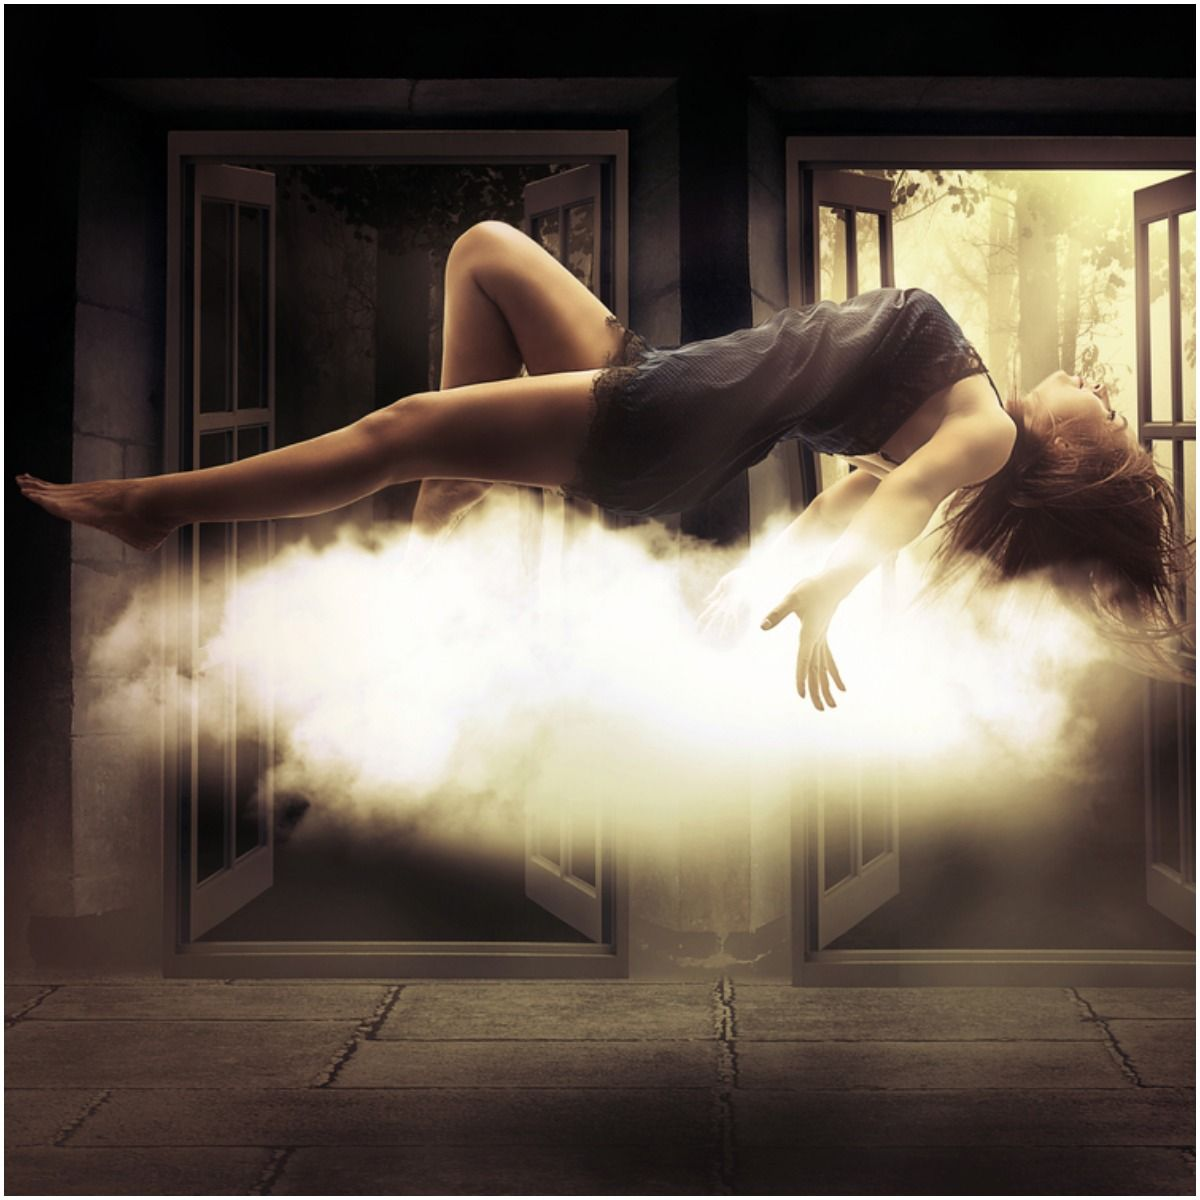 astral body woman